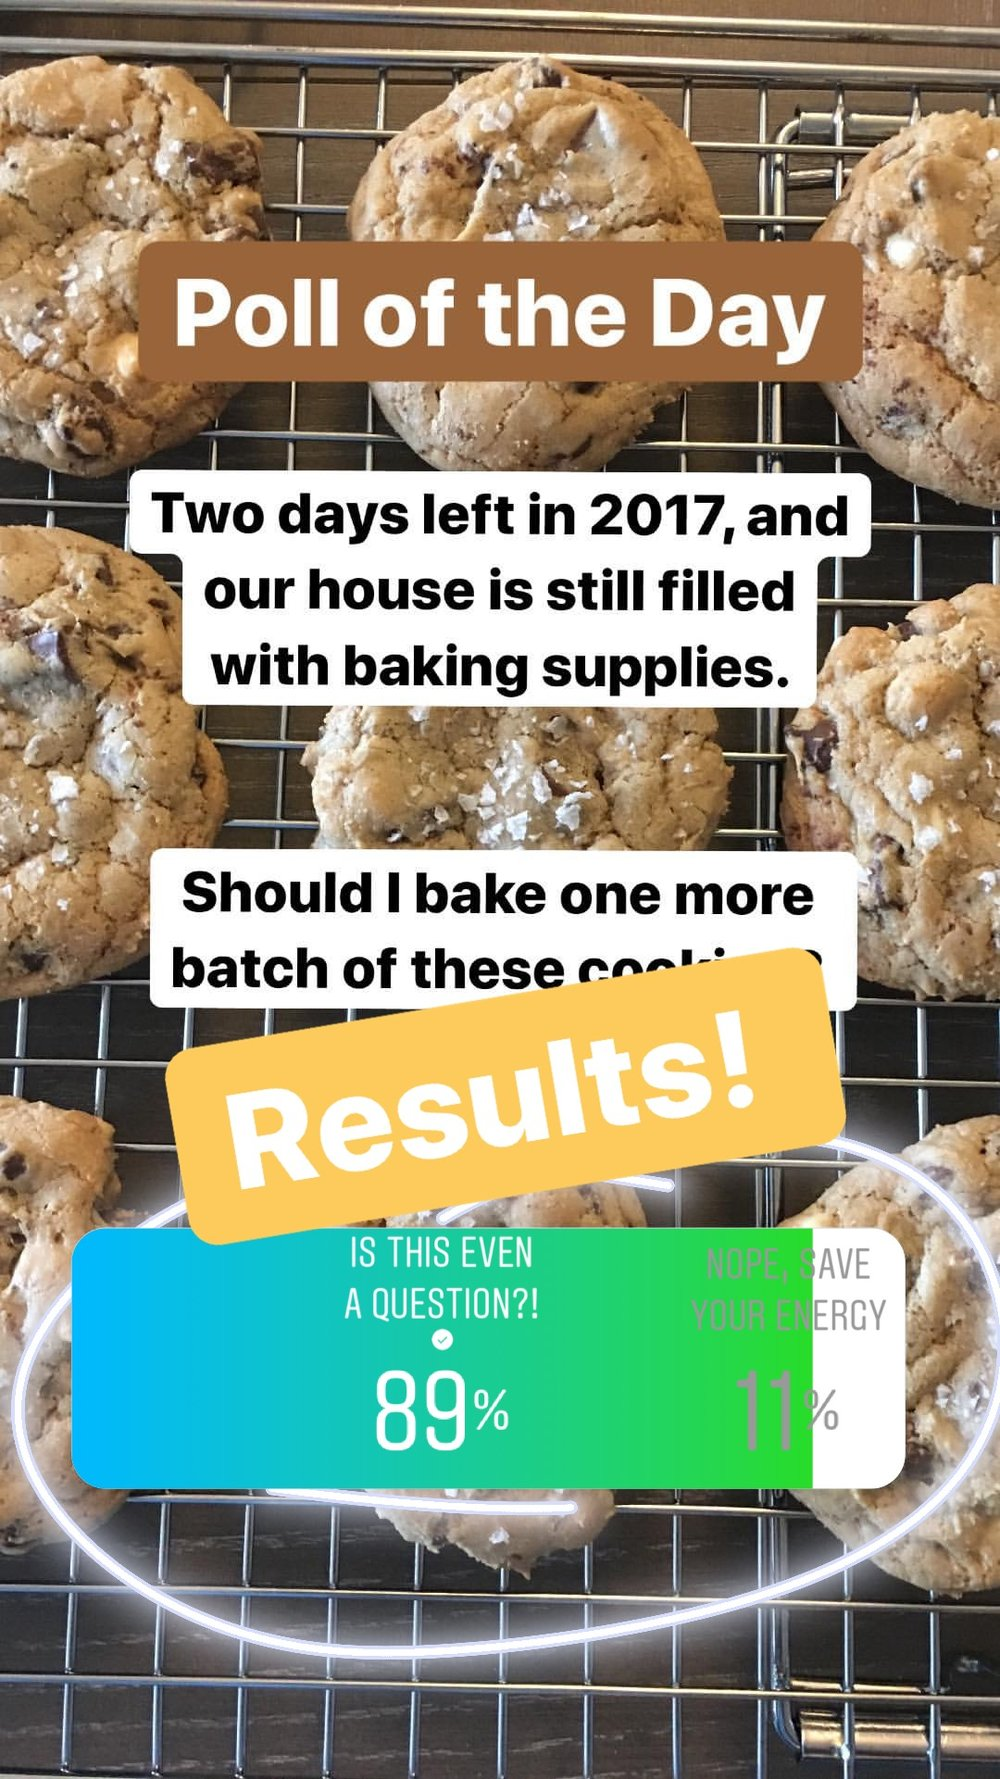 Ha! Well, if you've been following along, you know that we did make another batch of this dough, and actually baked the cookies on new year's day! Perhaps my best batch yet, I was very happy to see that you all were encouraging of my end-of-Year baking endeavor. And thankfully, this mindset is going to continue into 2018! Stay tuned...!